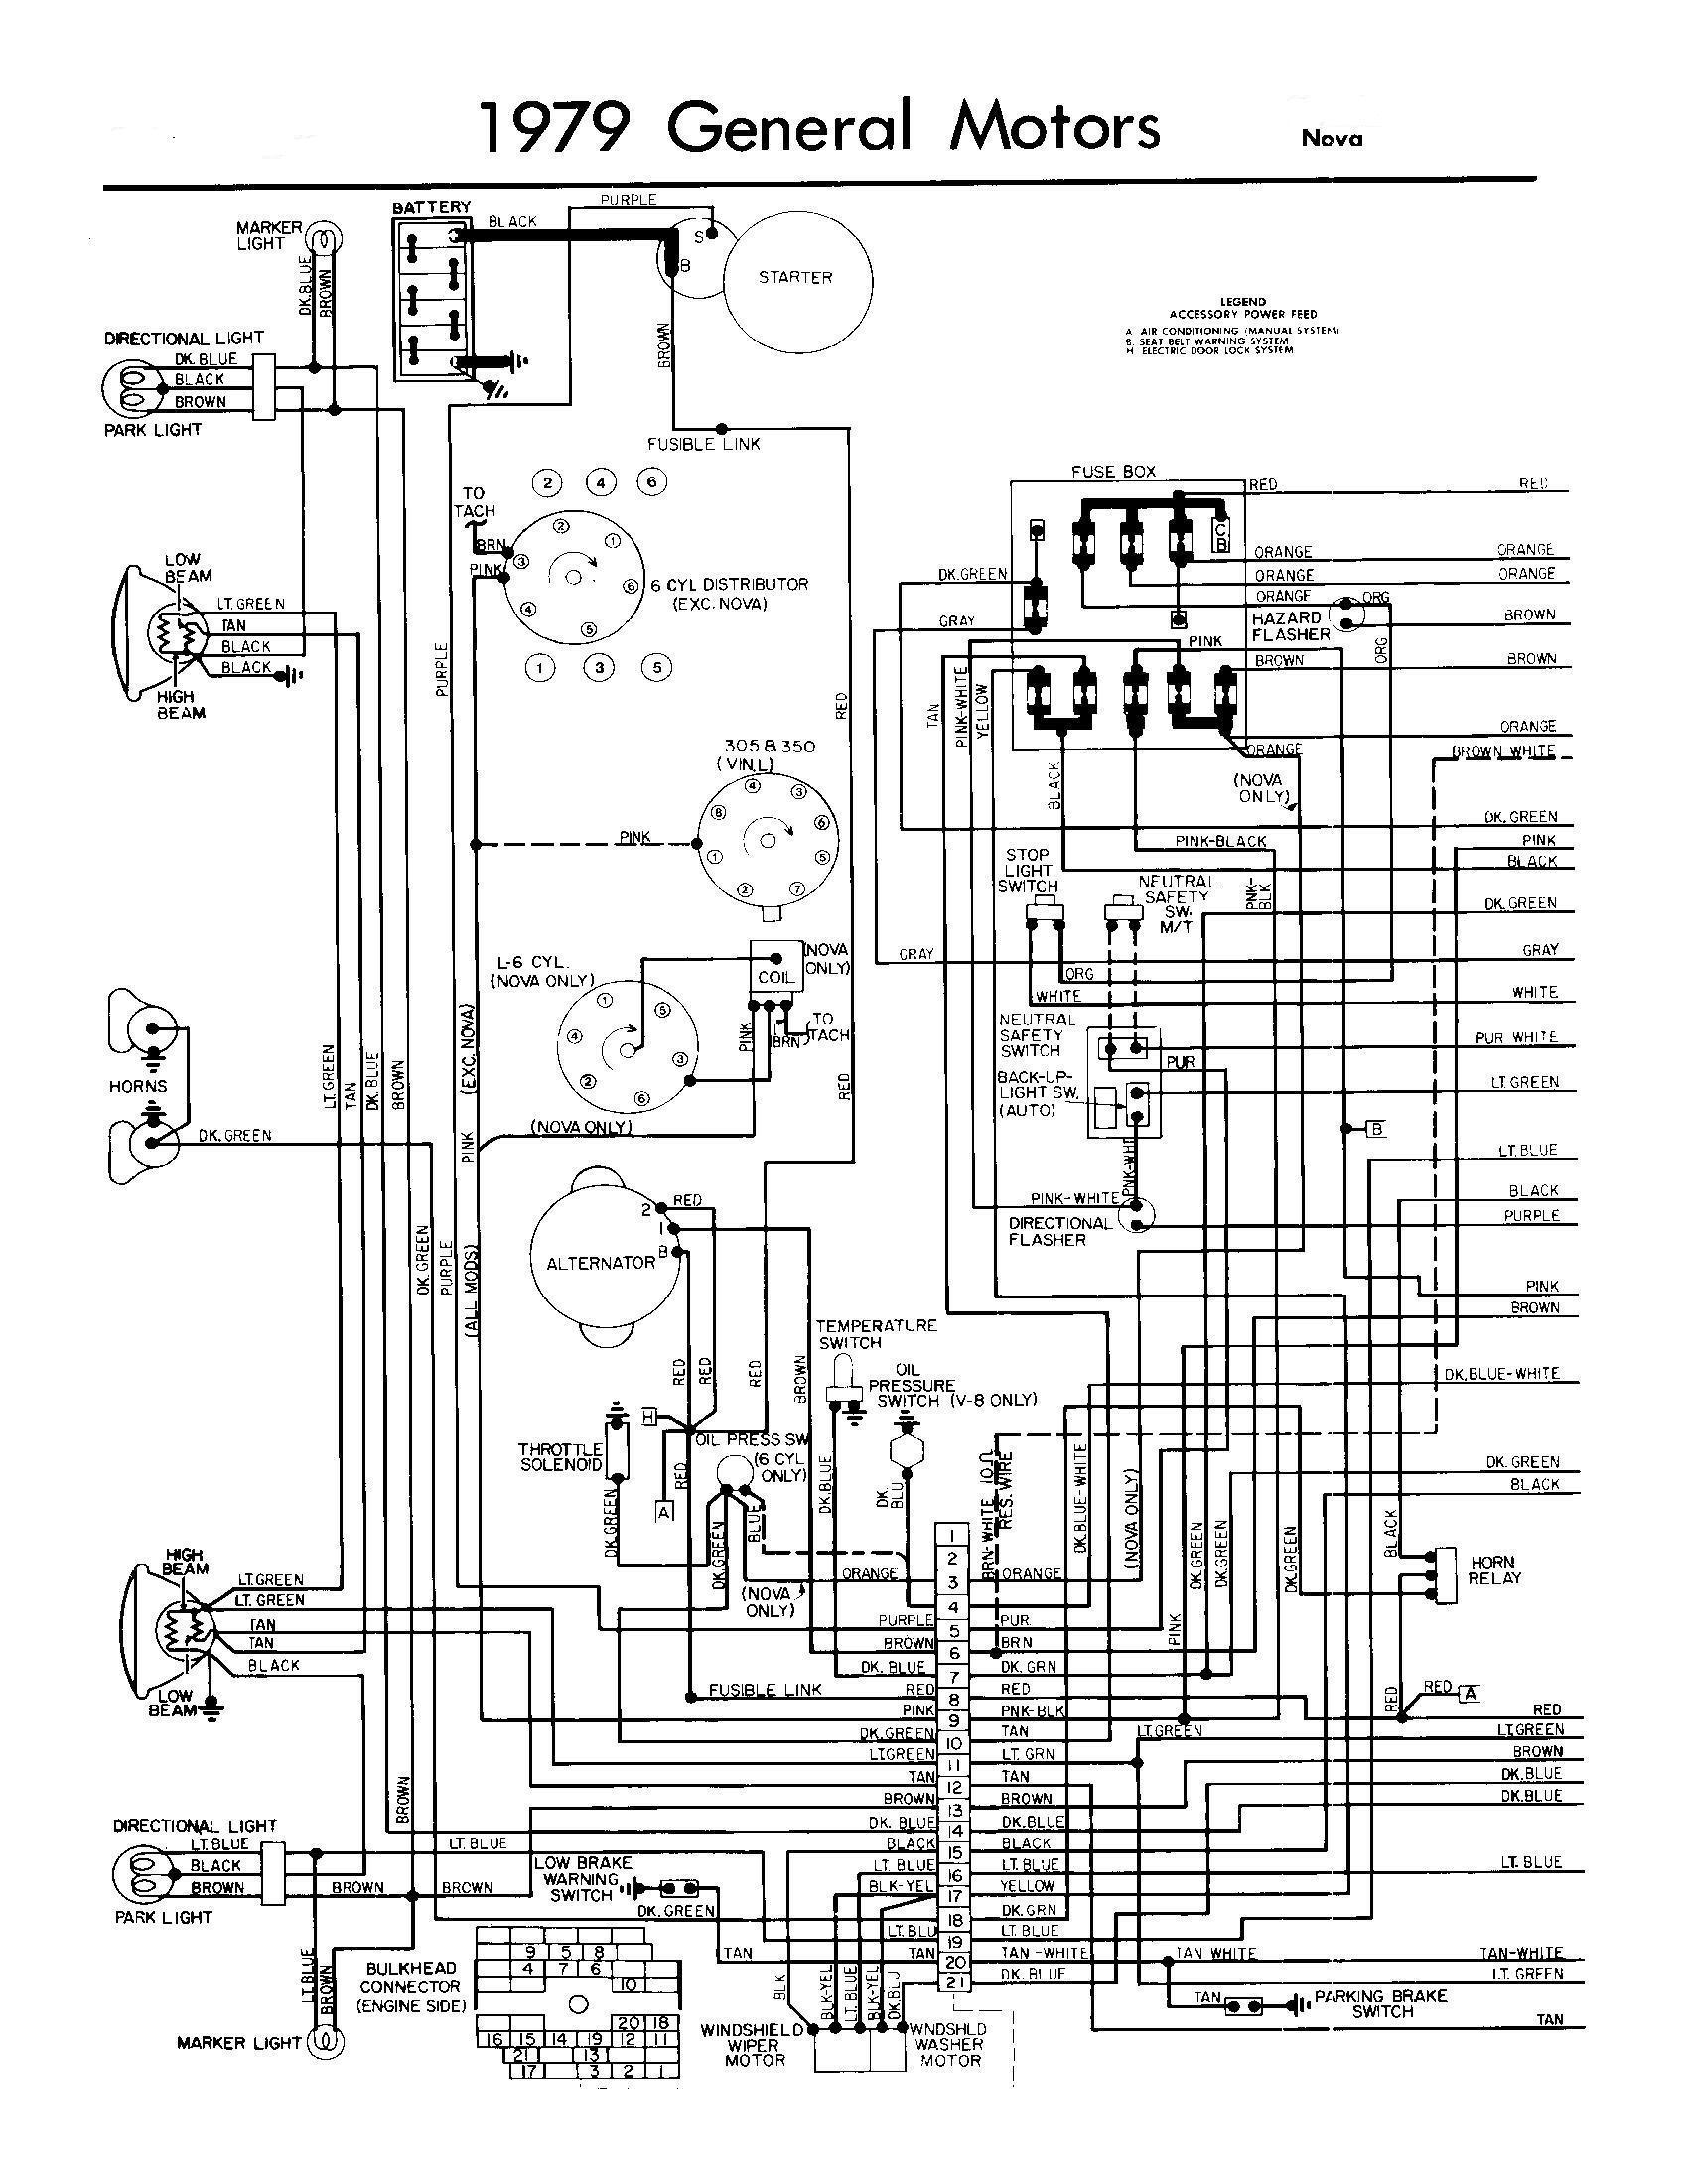 1979 chevy nova wiring diagram image details rh motogurumag com 76 Nova Wiring Diagram 3-Way Switch Wiring Diagram